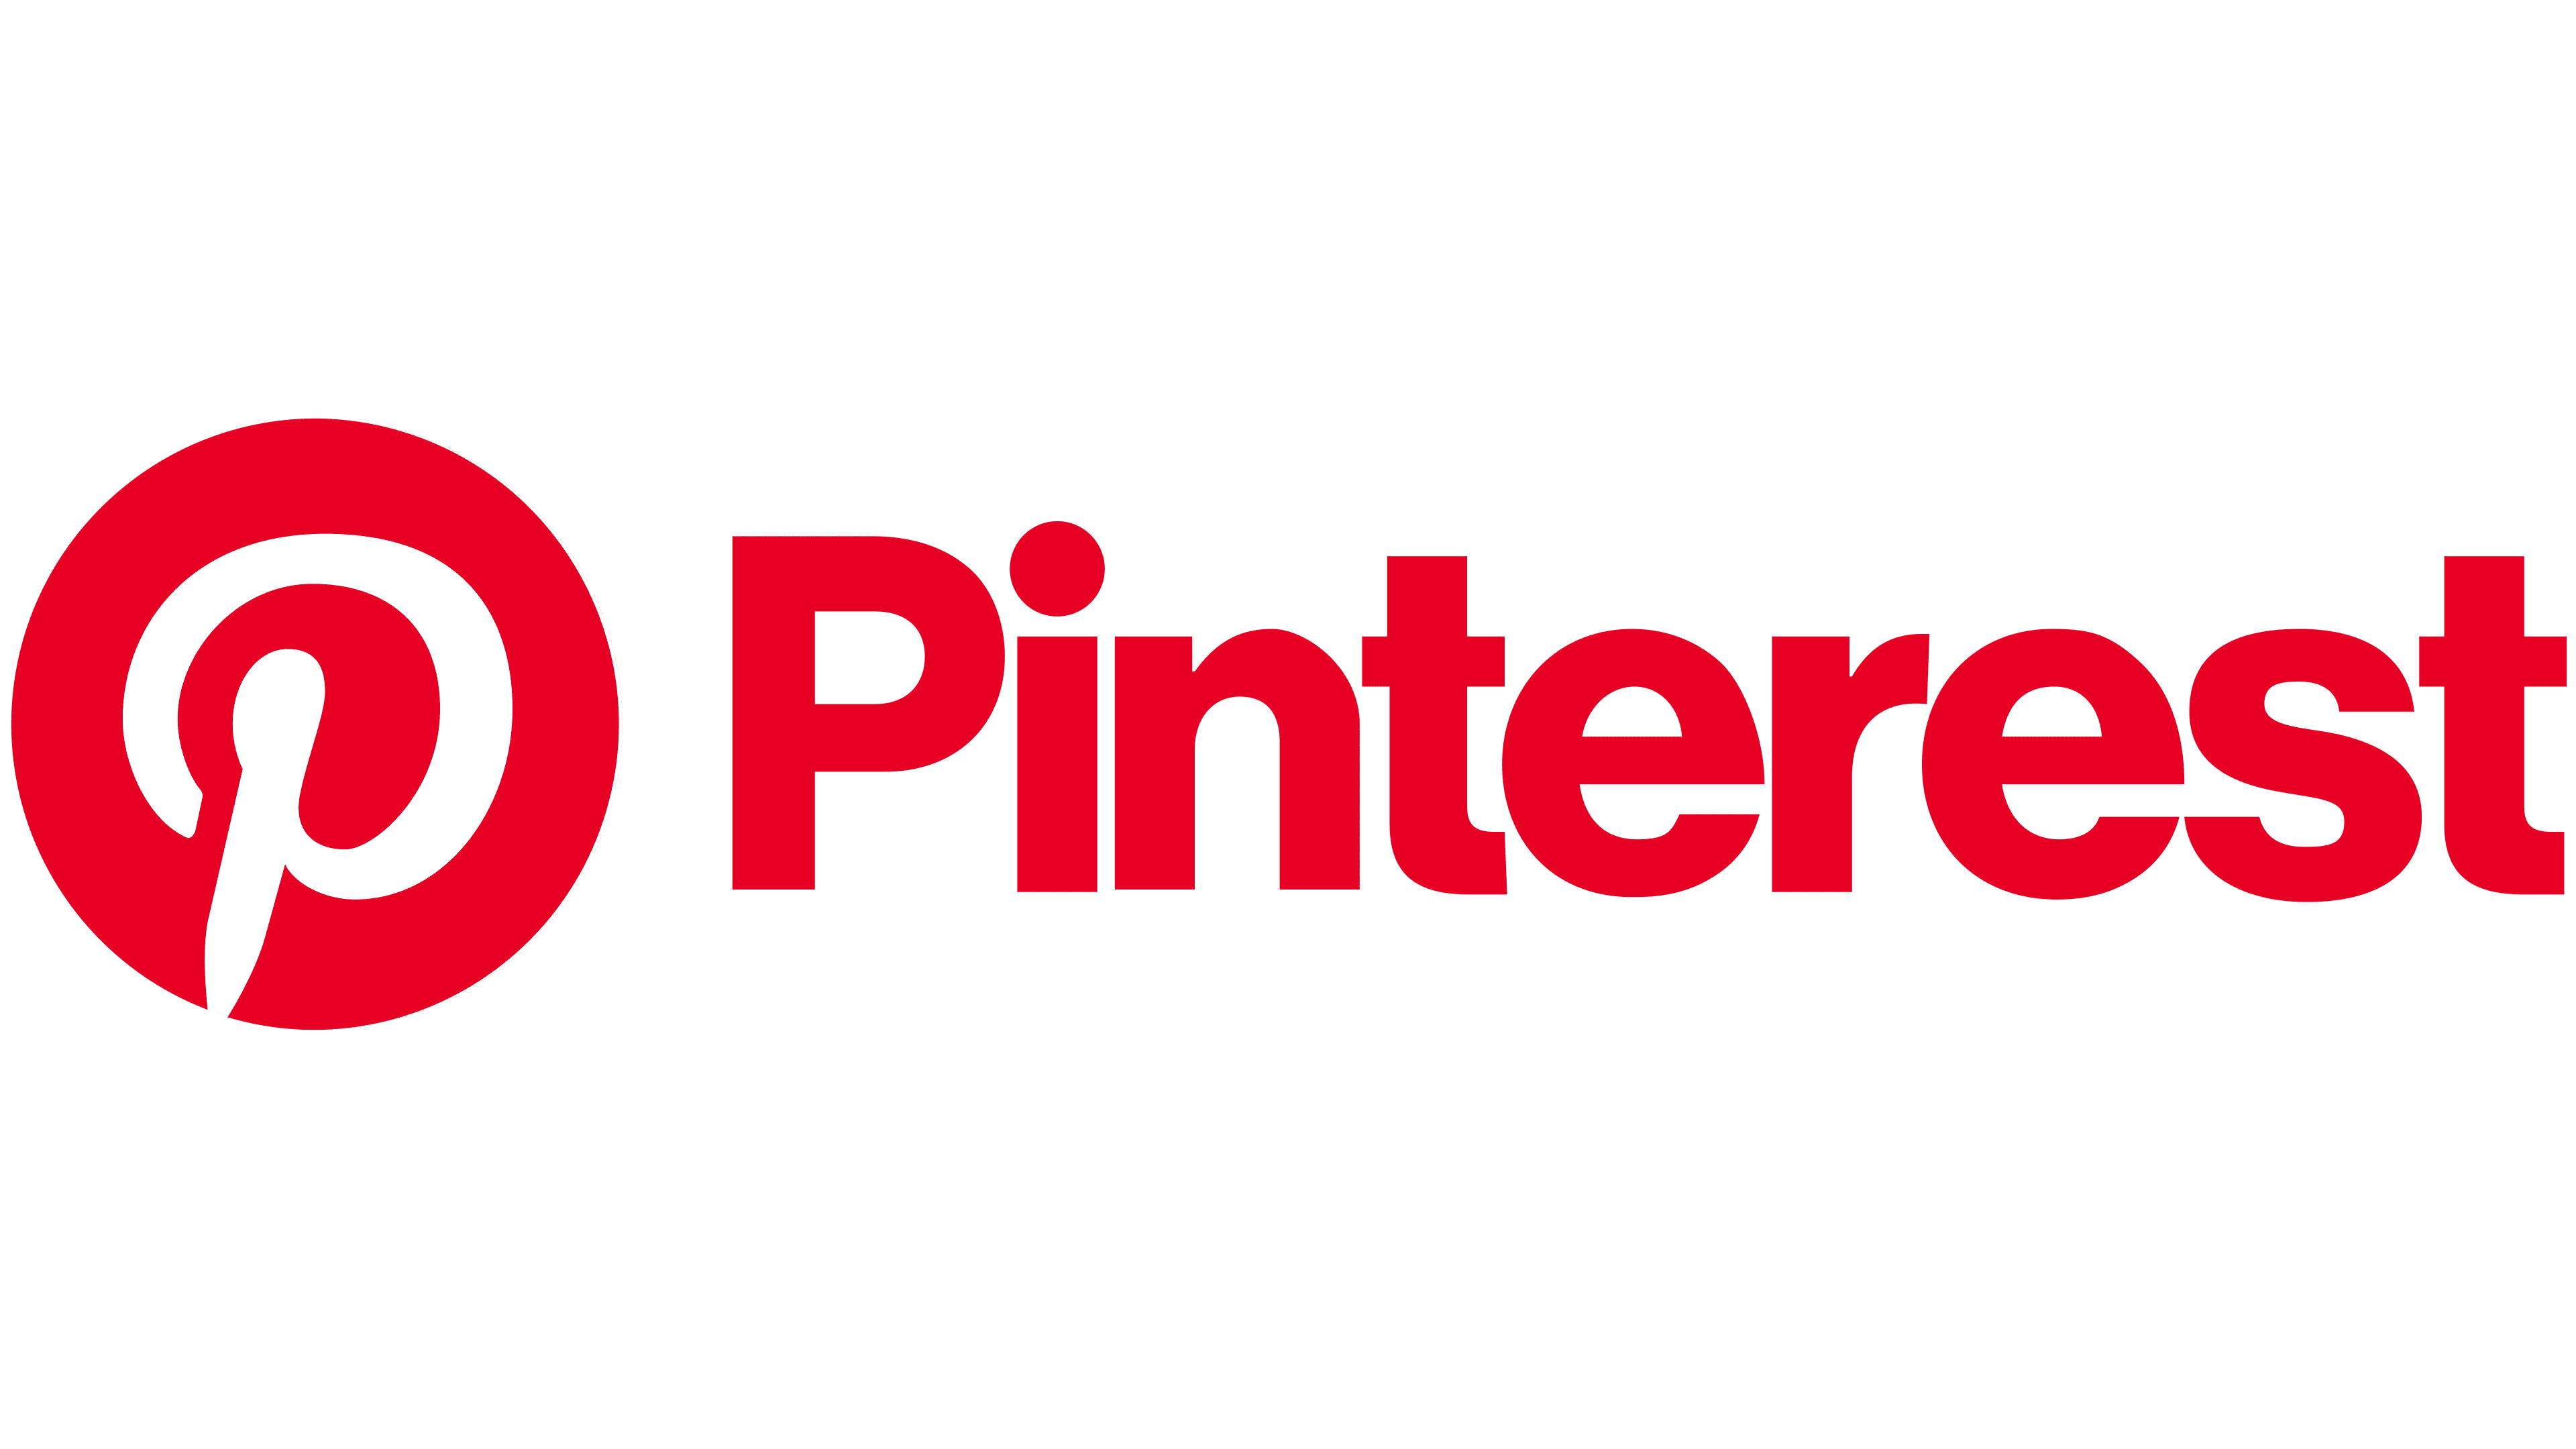 How to Download Videos from Pinterest 2021 in PC and Mobile